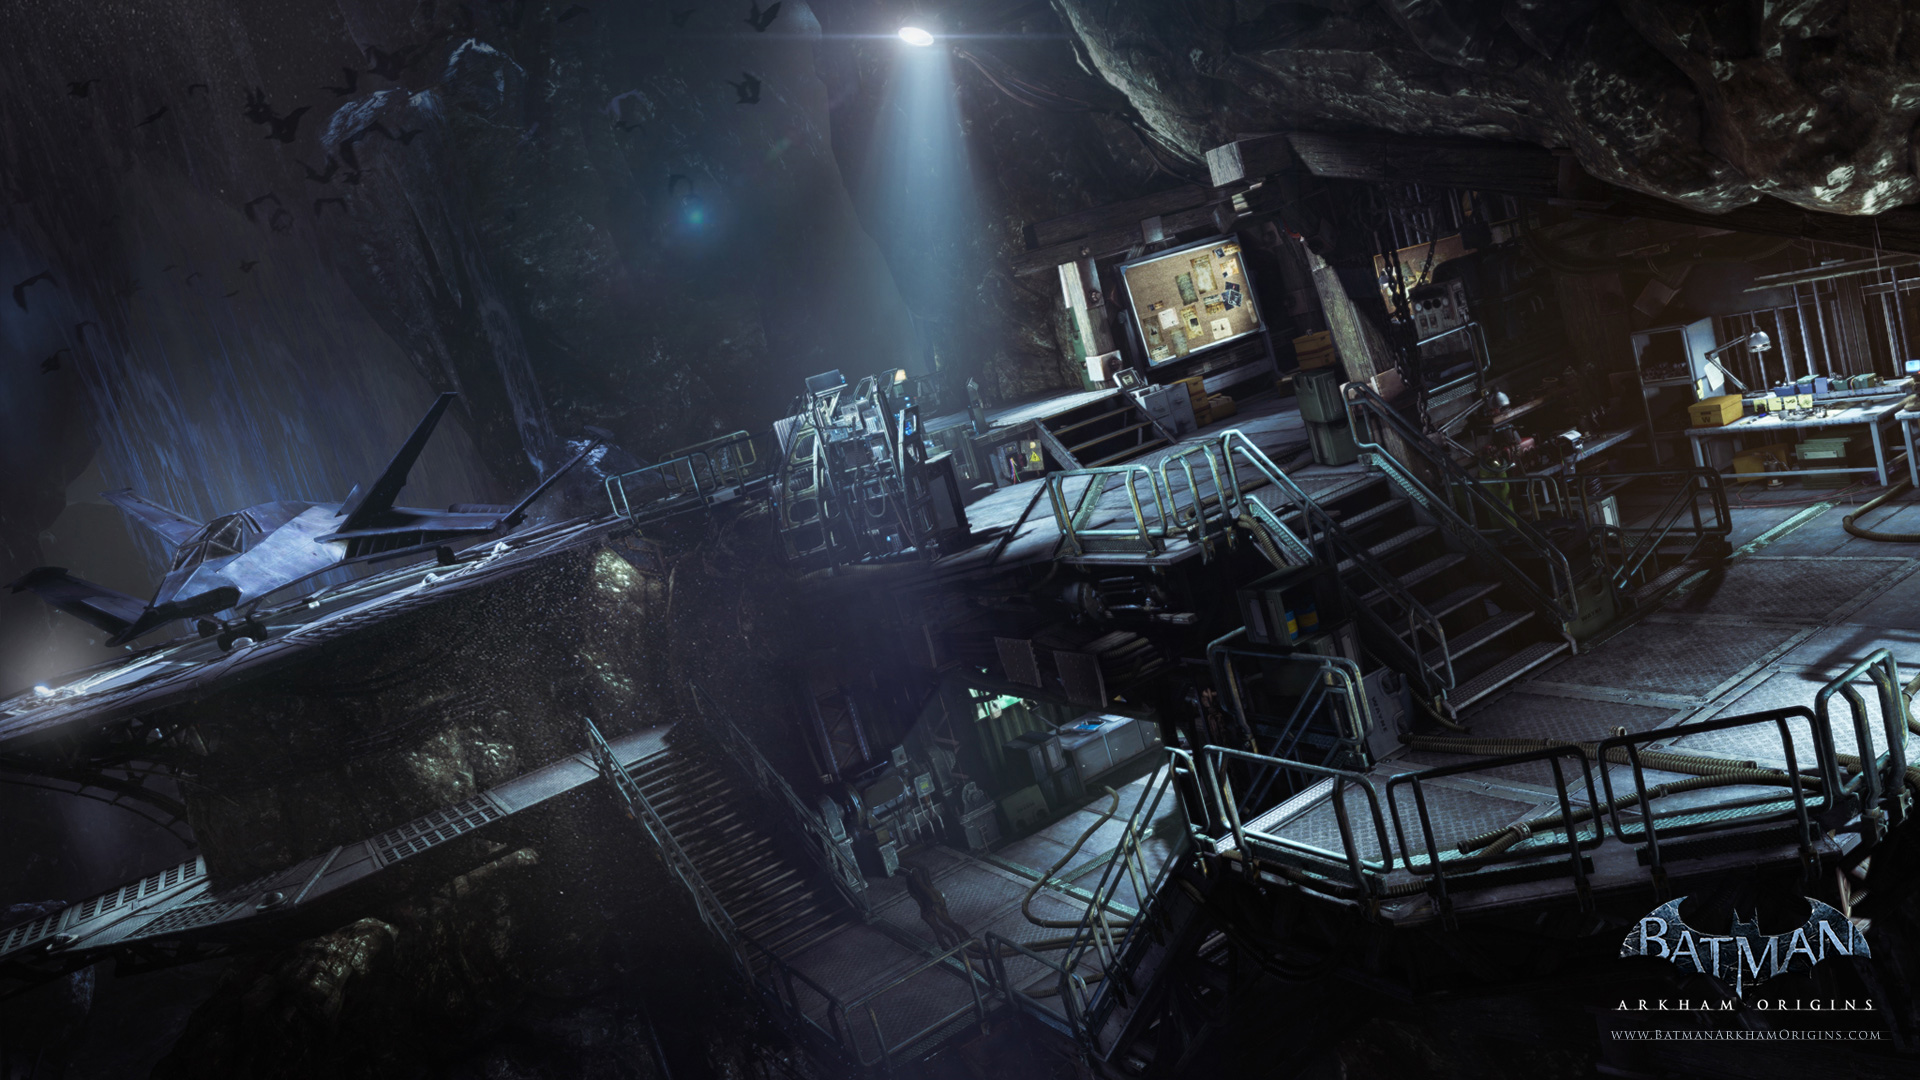 Arkham City Batcave The Batcave in Arkham Origins